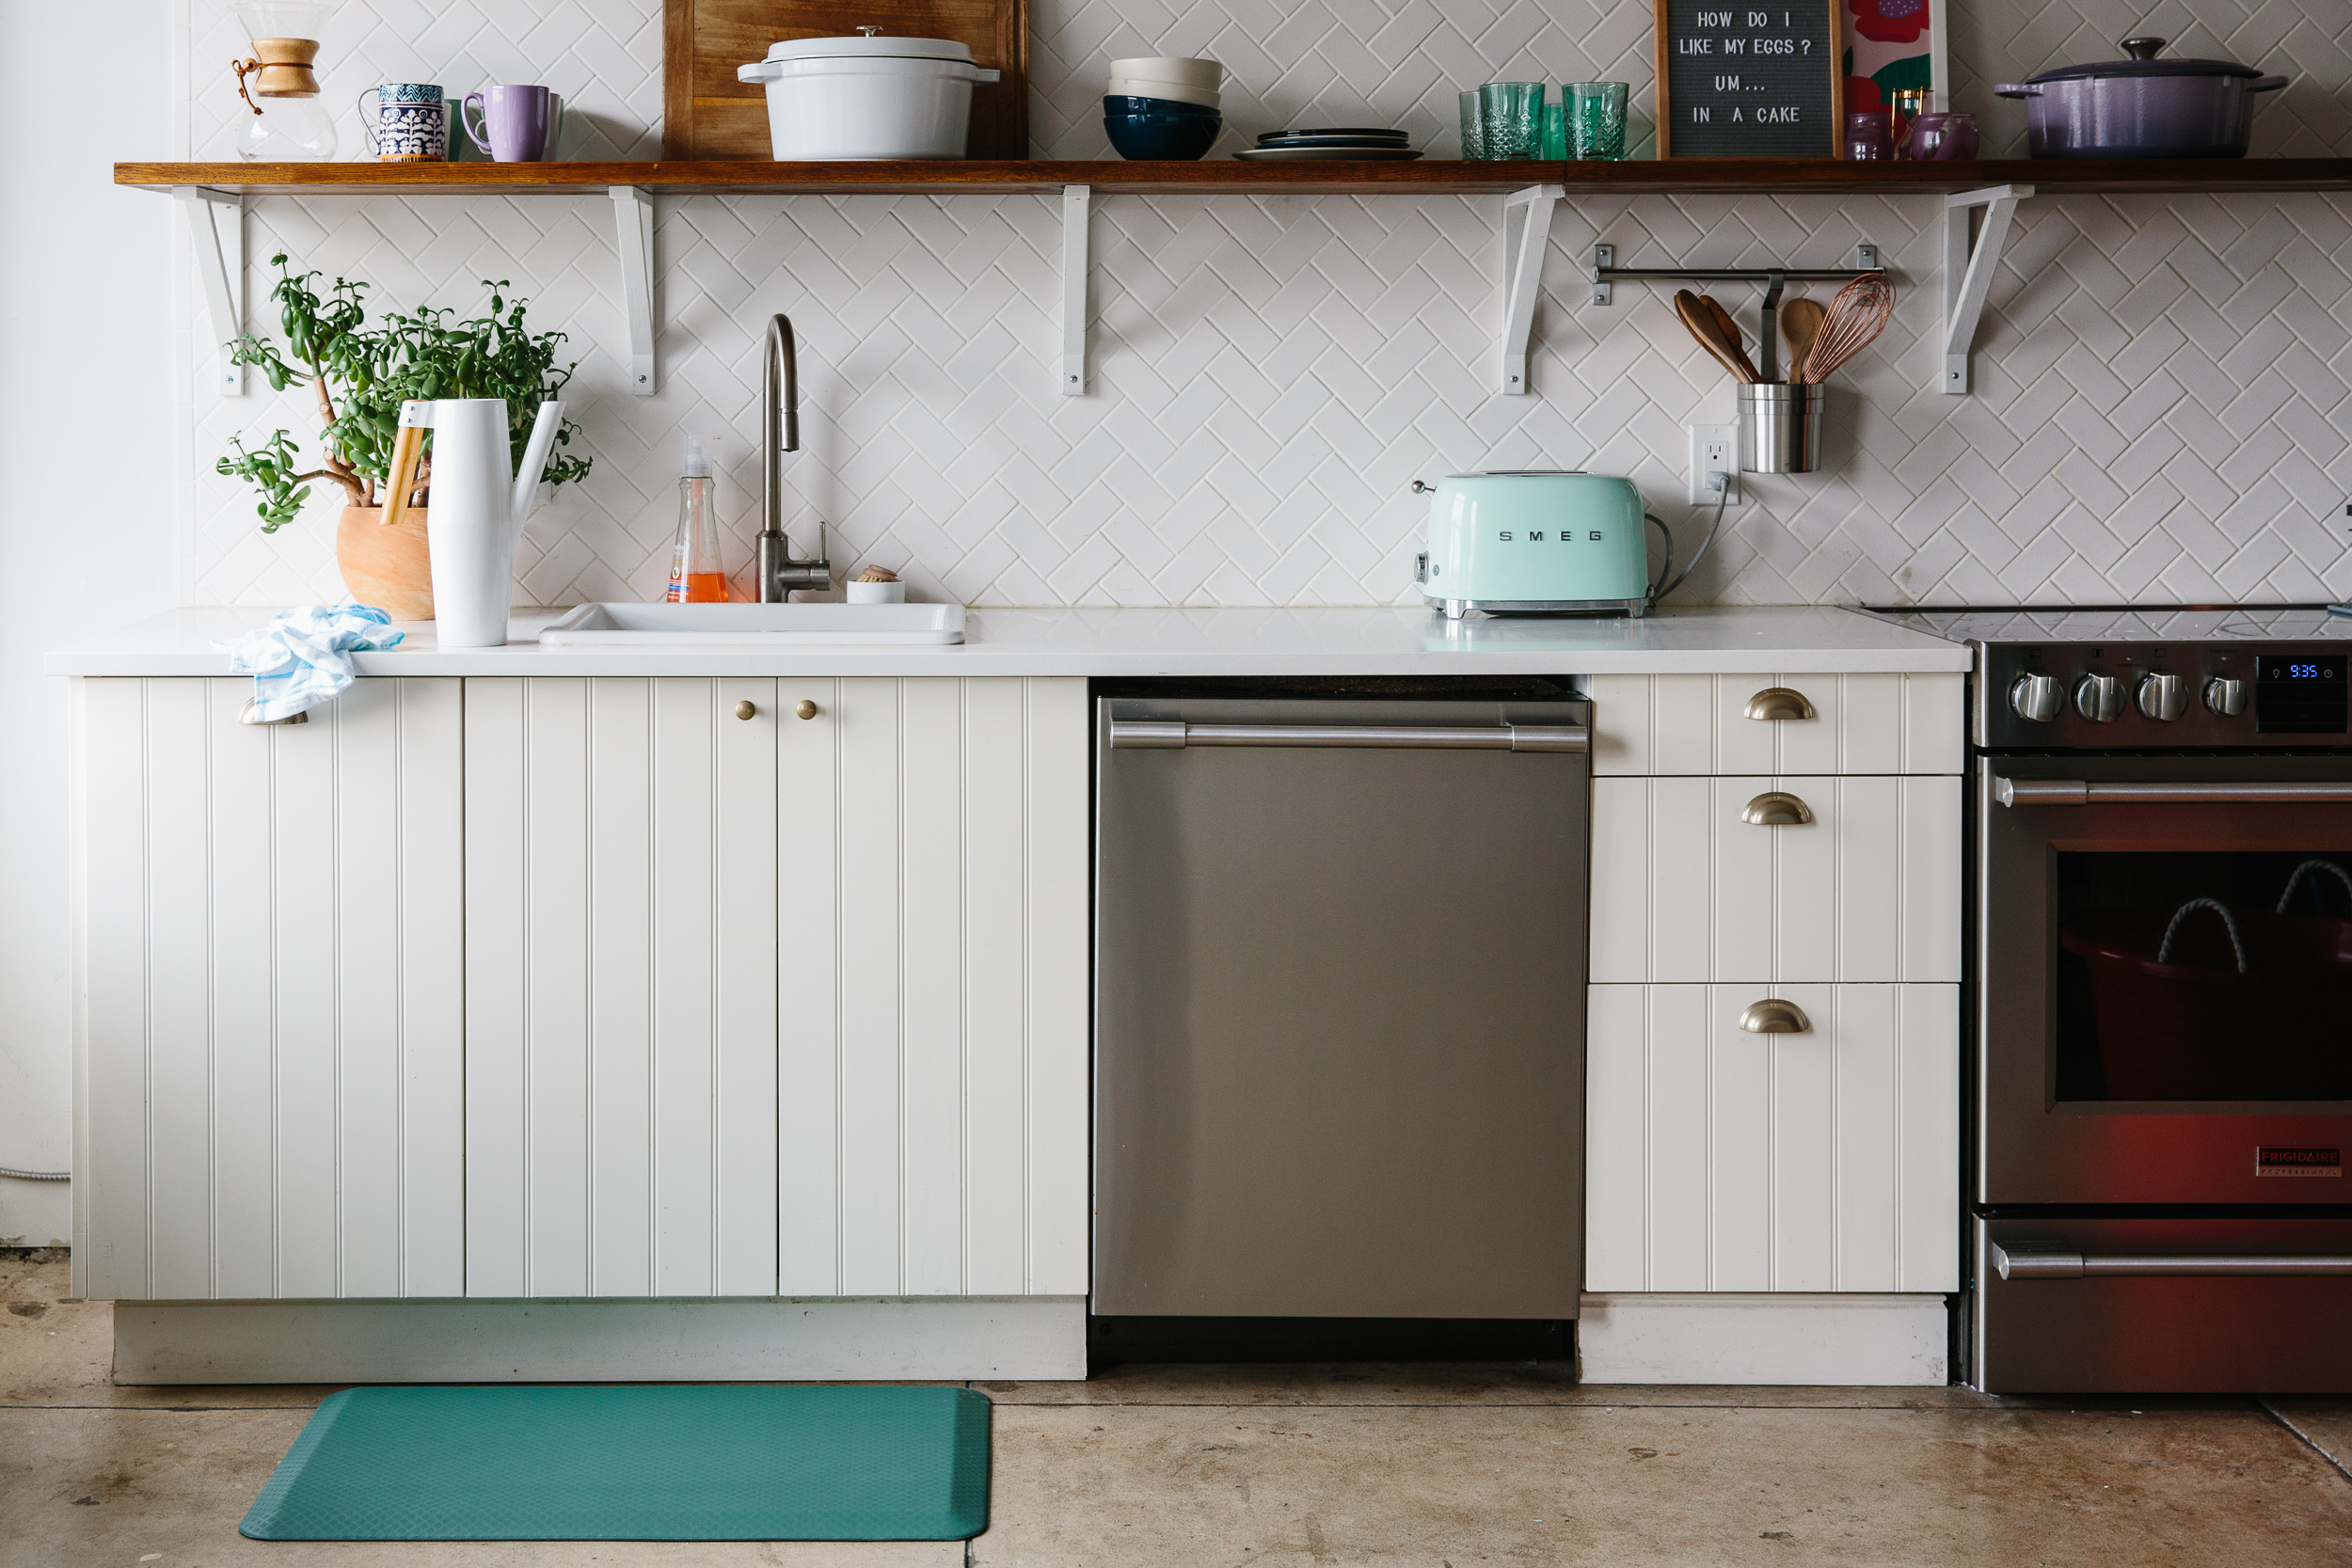 How To Clean An Anti Fatigue Kitchen Mat Kitchn